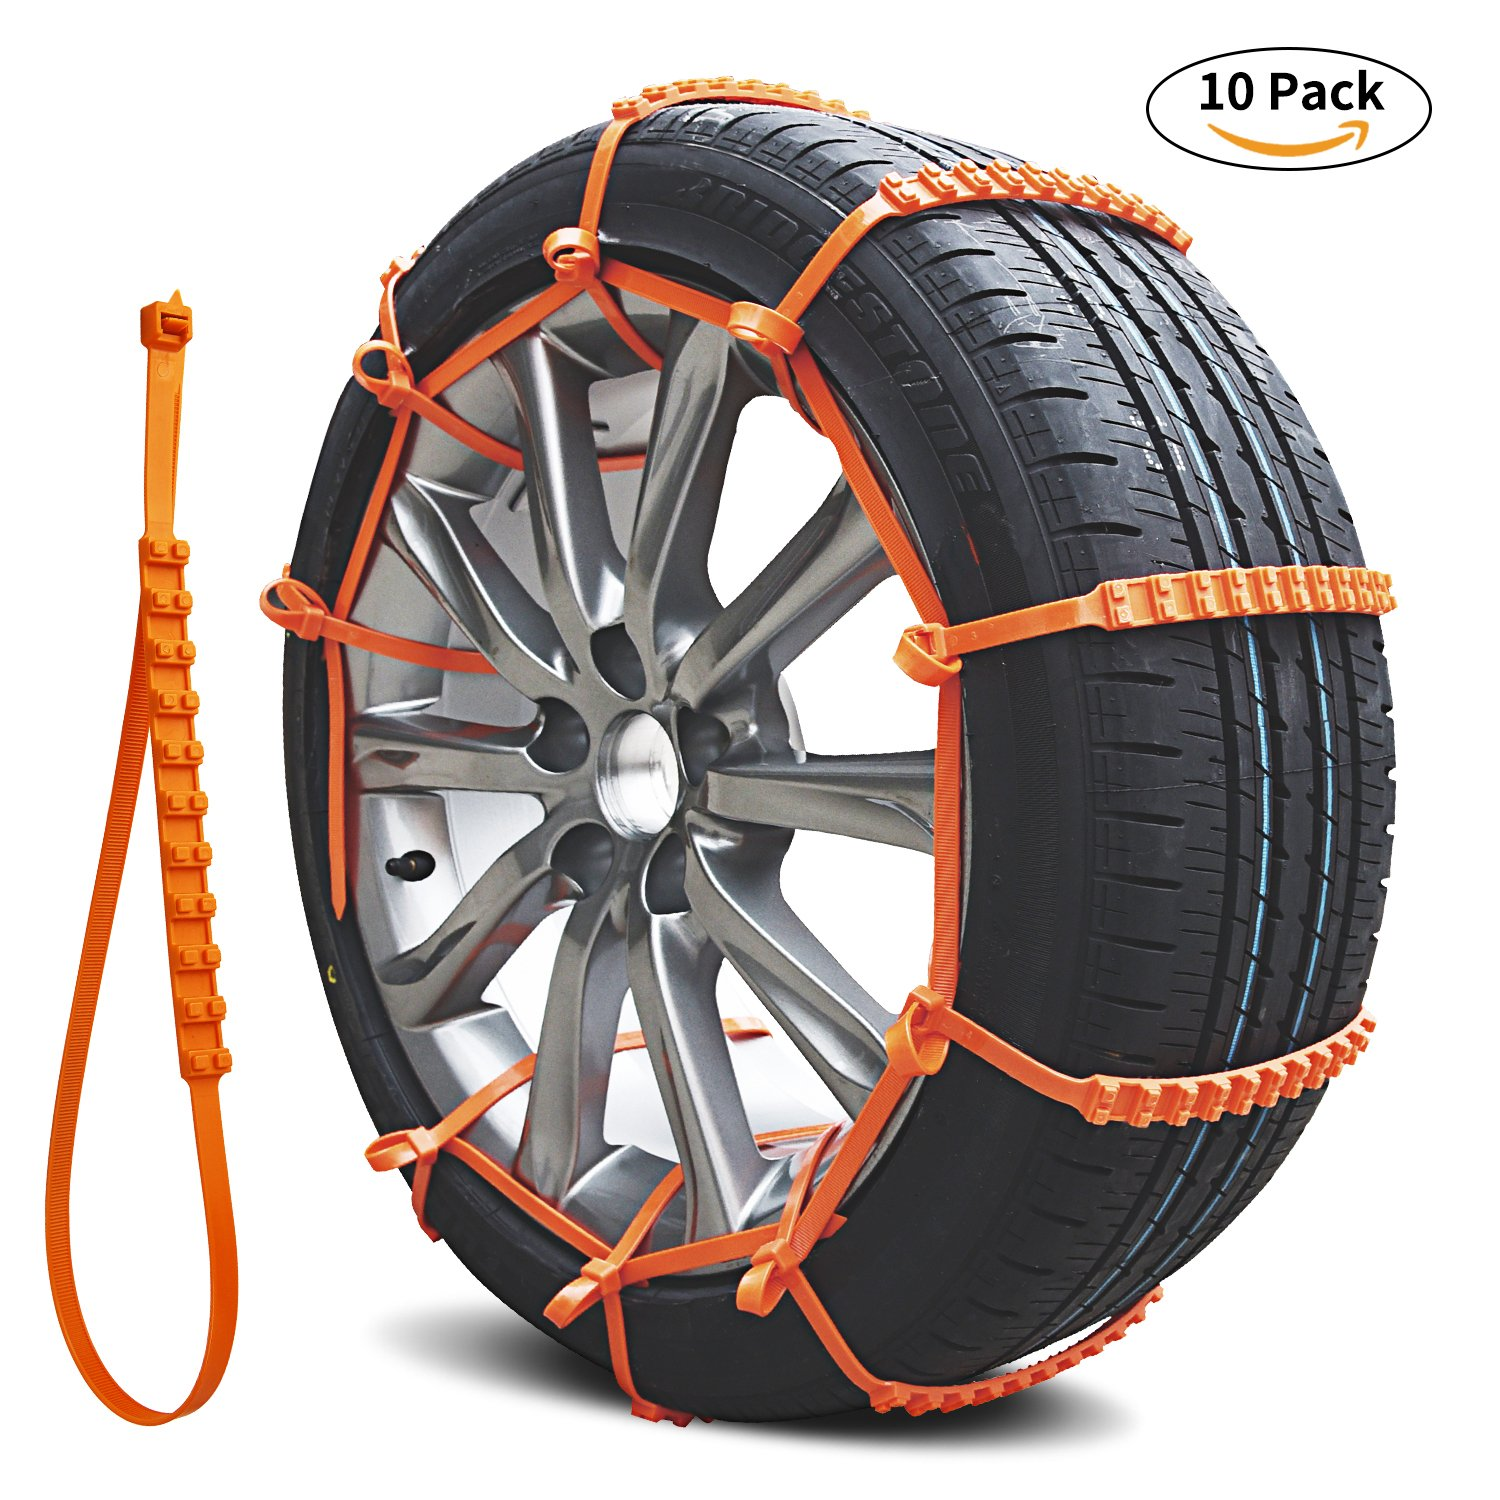 Snow Chains, Emergency Tire chains Tire Chains Adjustable Snow Cable Chains Emergency Chains Fit for Most Car/SUV 10PCS